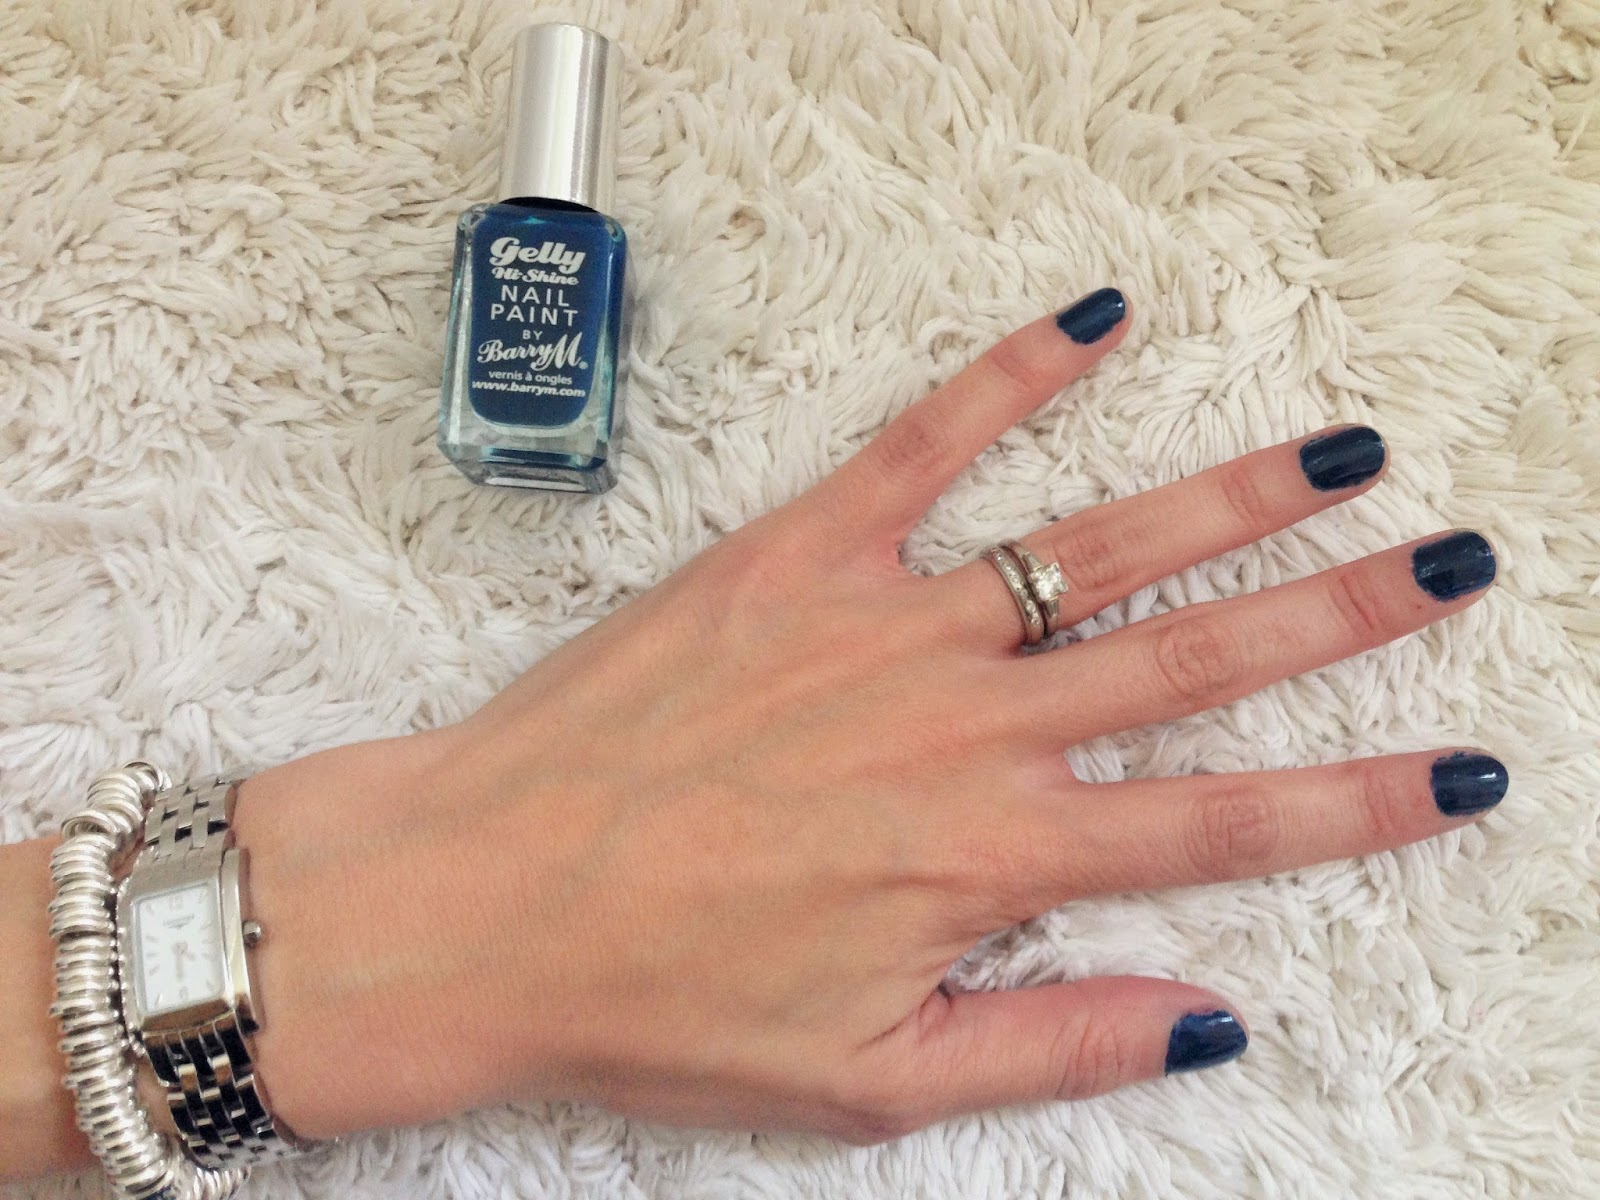 Barry M Gelly Nail Effects in Blackberry